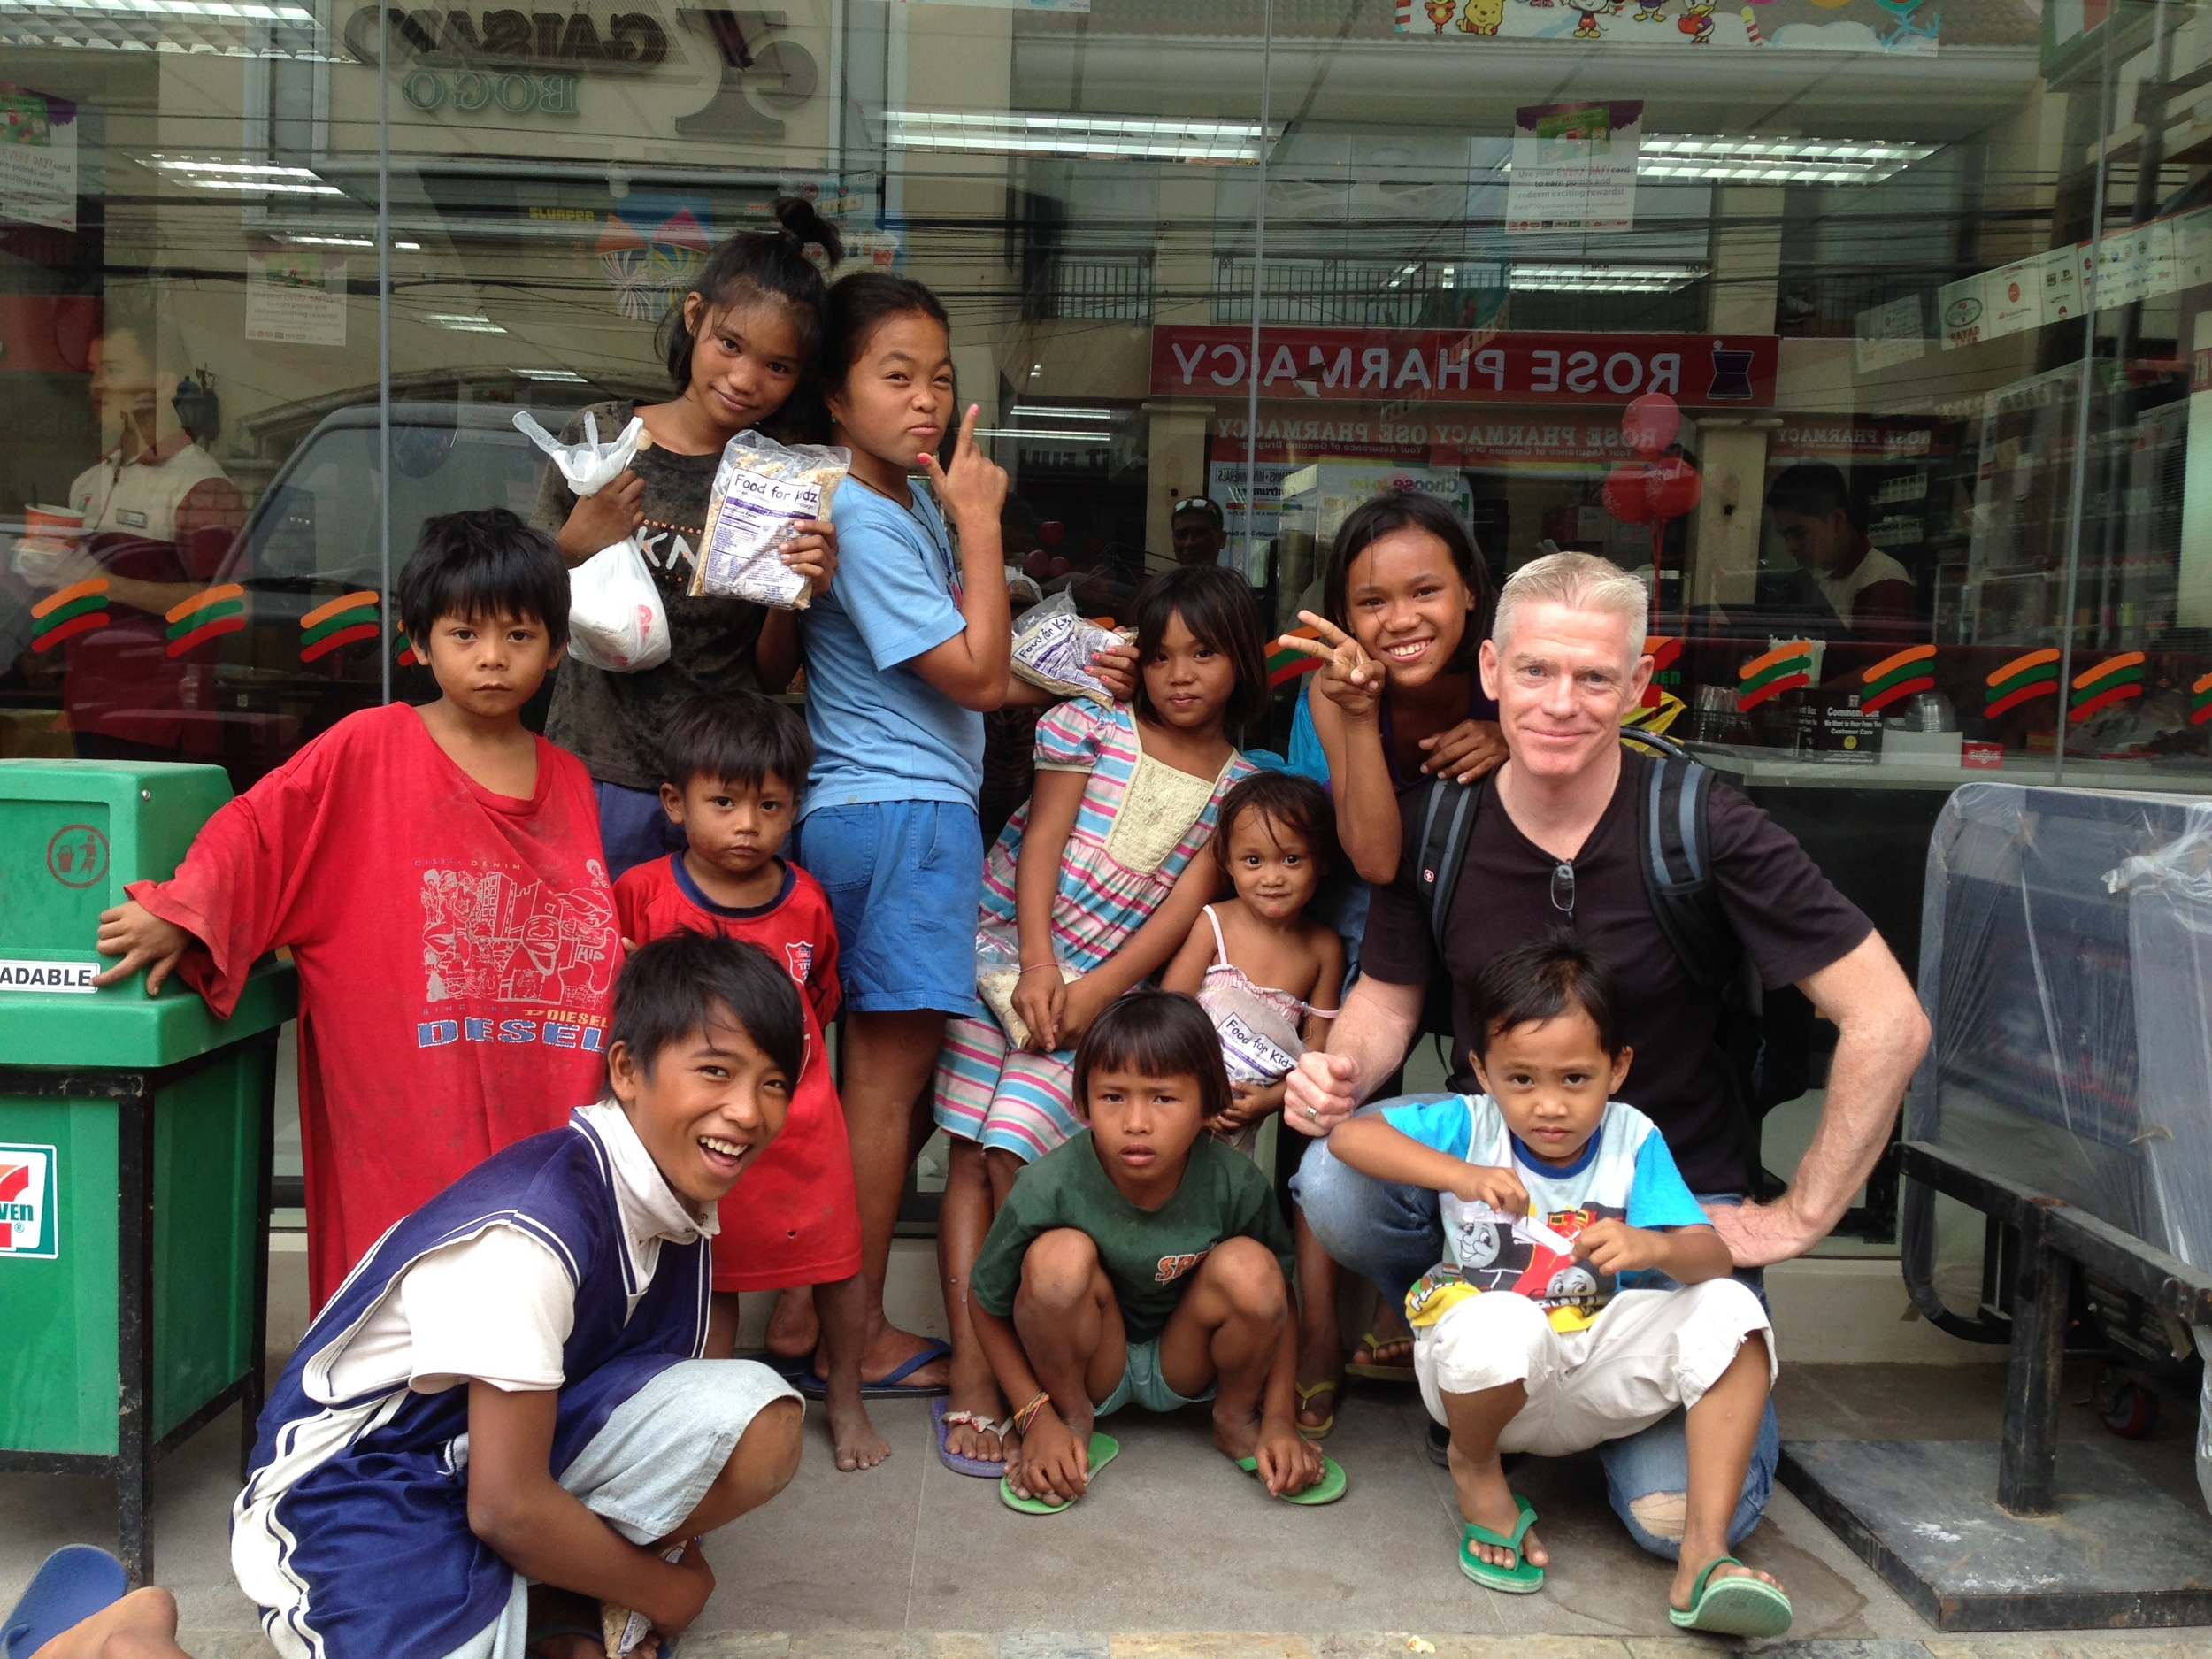 The Bogo Street Children need to be loved, valued, protected, cared for, and given an education